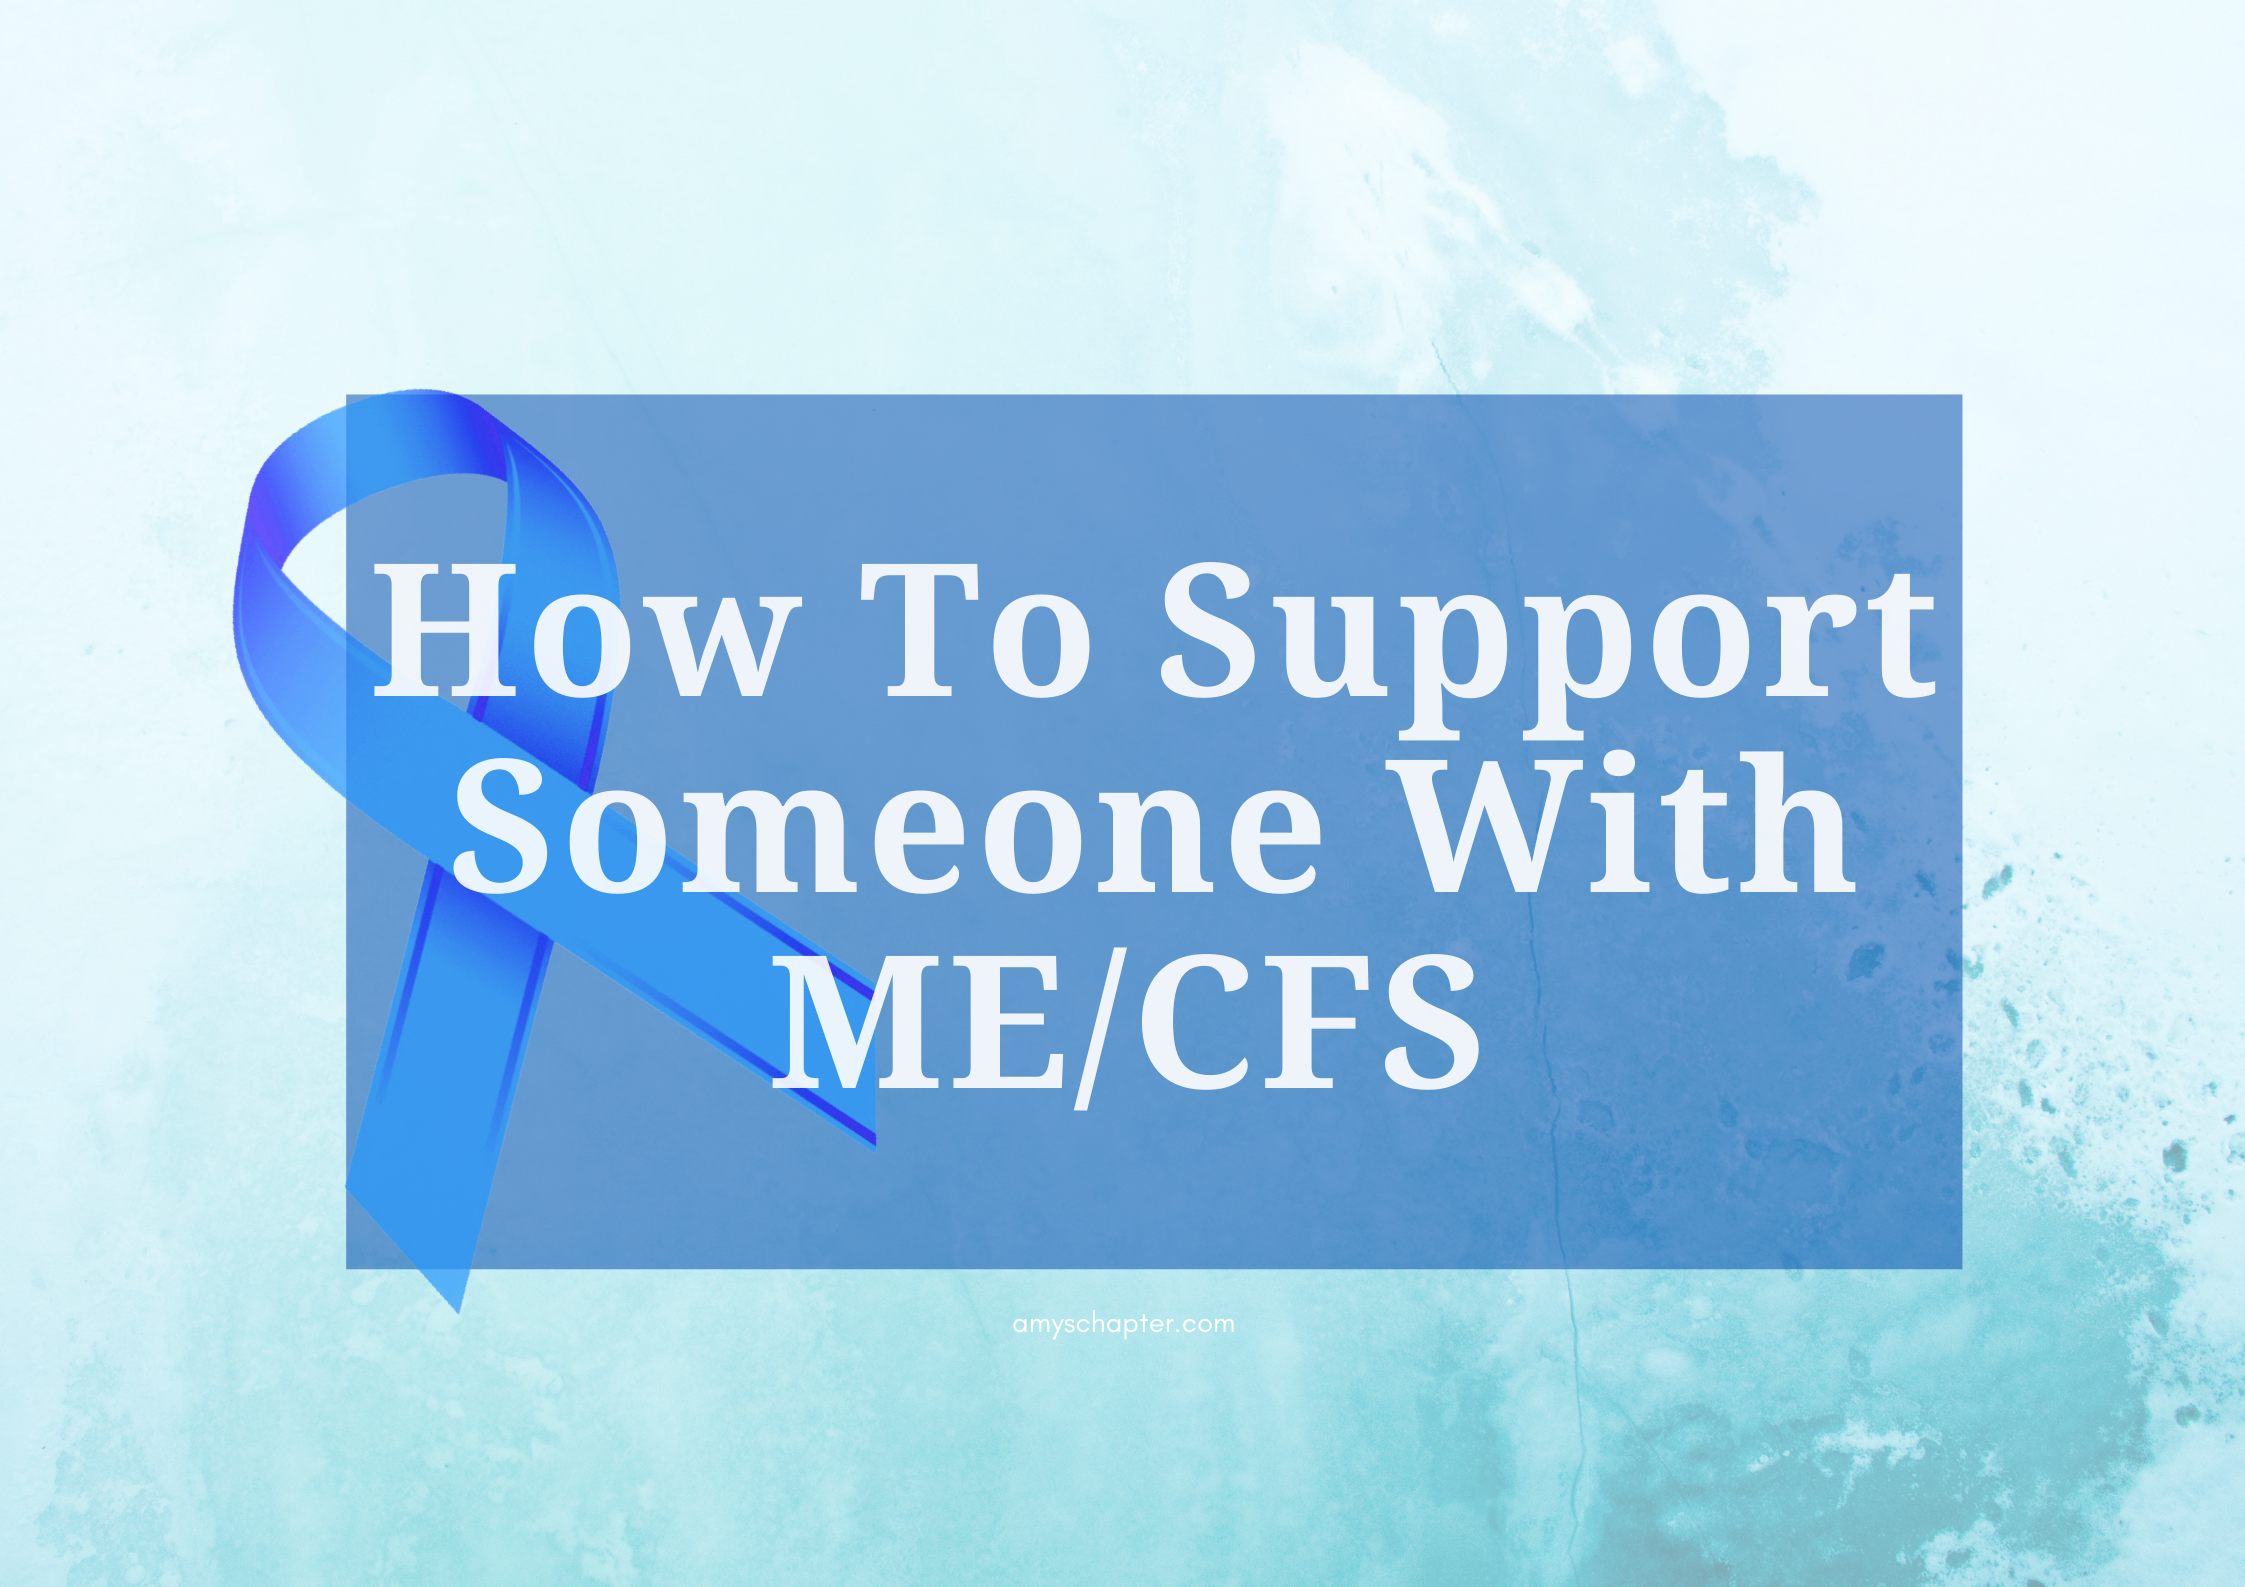 How To Support Someone With ME/CFS